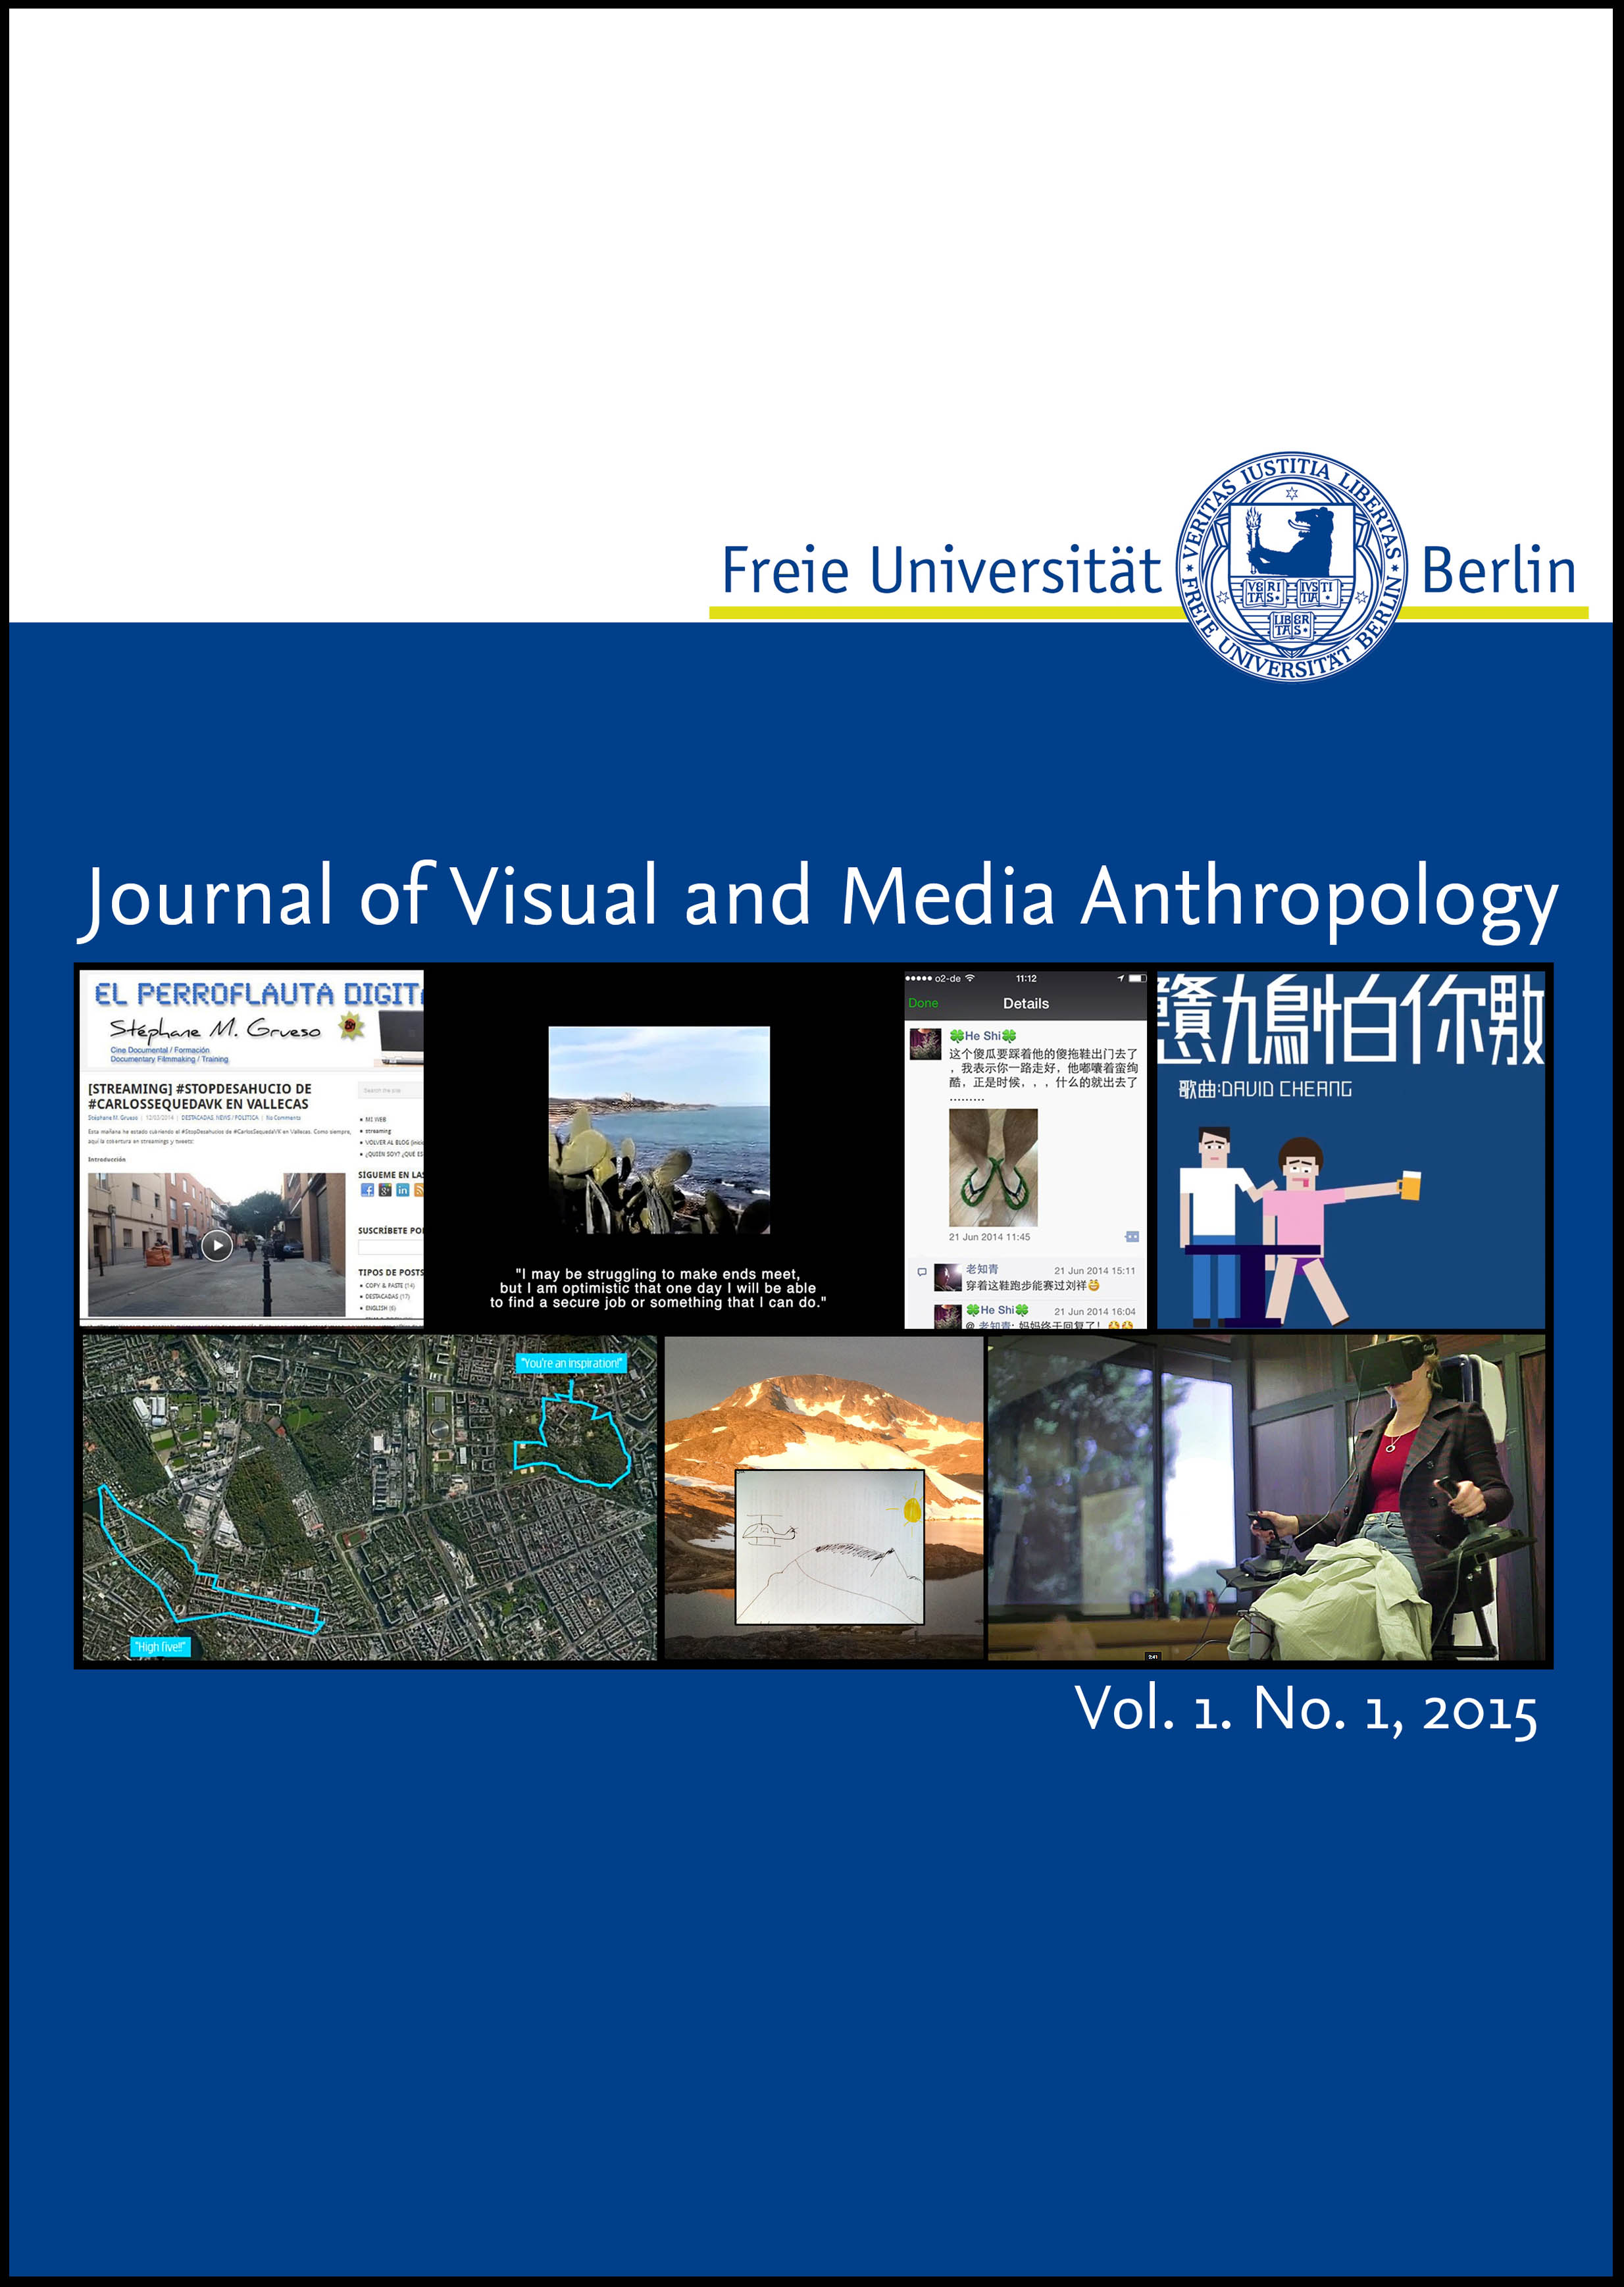 JOURNAL OF VISUAL AND MEDIA ANTHROPOLOGY - The Journal of Visual and Media Anthropology is a a peer-reviewed open-access journal dedicated to research on digital environments and cultures, the impact of new media on expressions of self and social formations, the theory and practice of ethnographic filmmaking and the study of online- and offline visual worlds. The journal is a venture of Freie Universität Berlin's Research Area Visual and Media Anthropology. It will present written works, machinima and short films that self-consciously experiment with innovative modes of representation, new forms of integrating written and multi-media ethnography and therefore seeks to challenge the conventions of academic publishing.EDITORS: PROF. DR. URTE UNDINE FRÖMMING, STEFFEN, KÖHN, MIKE TERRY.HERE